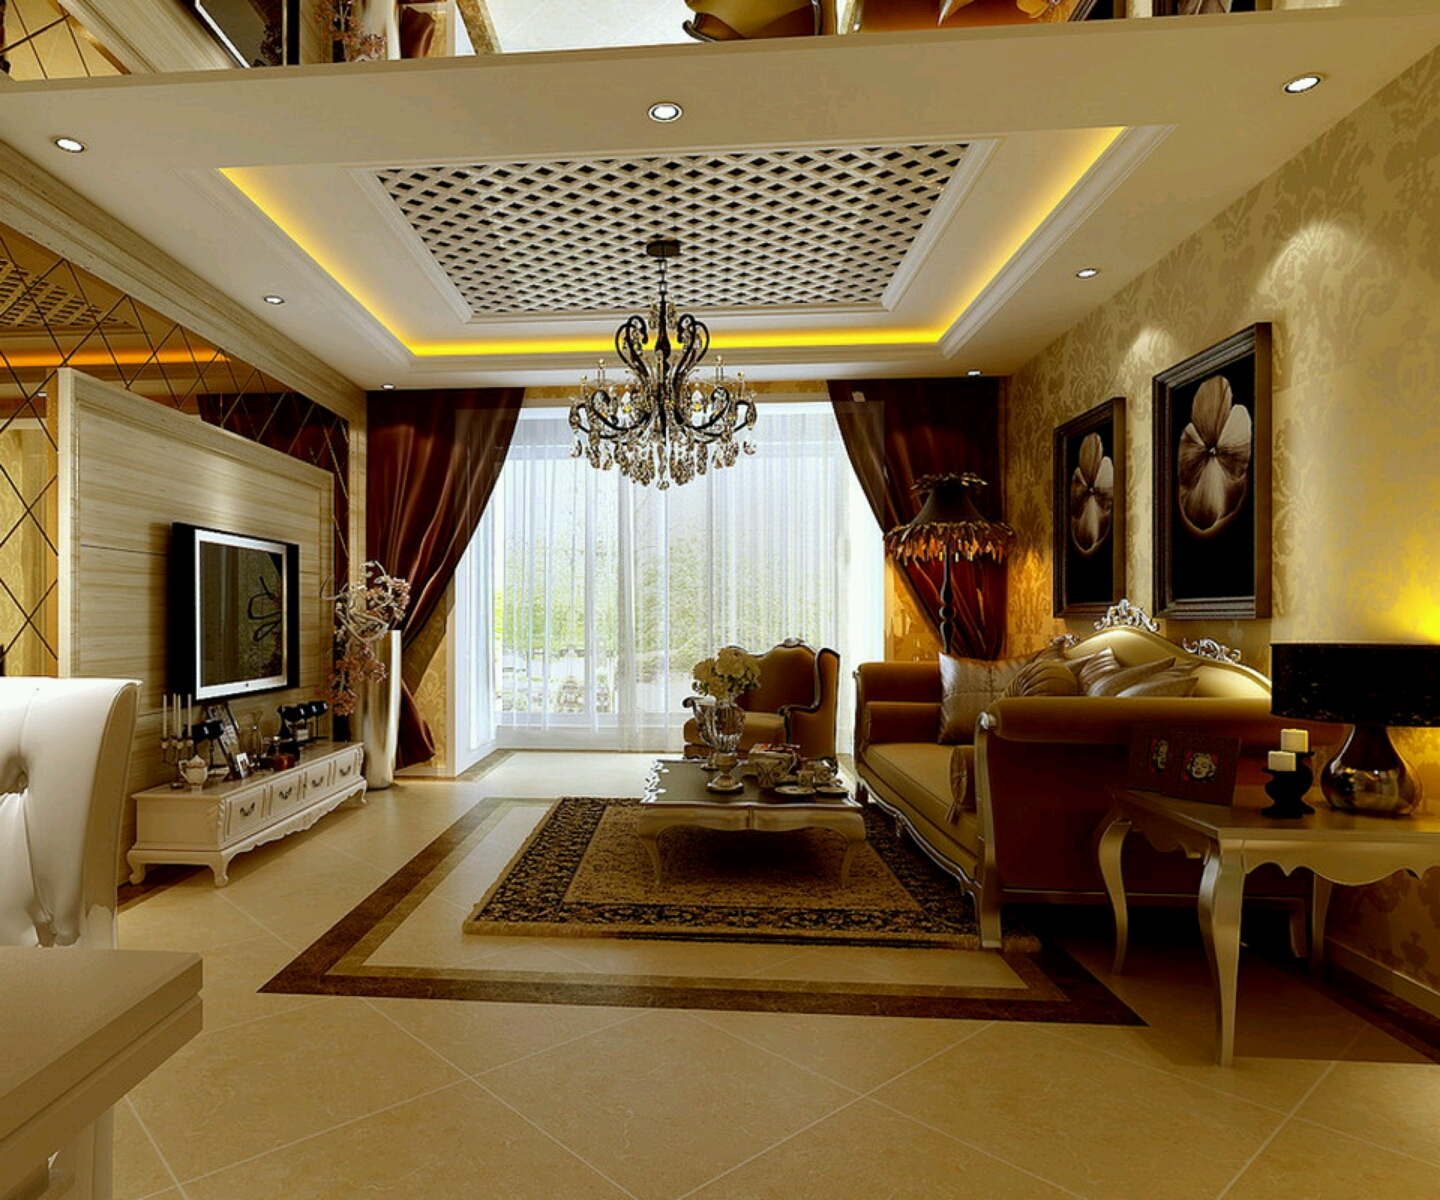 Modern Living Room Design Ideas 2012 home decor living room ideas modern living room design ideas 2012